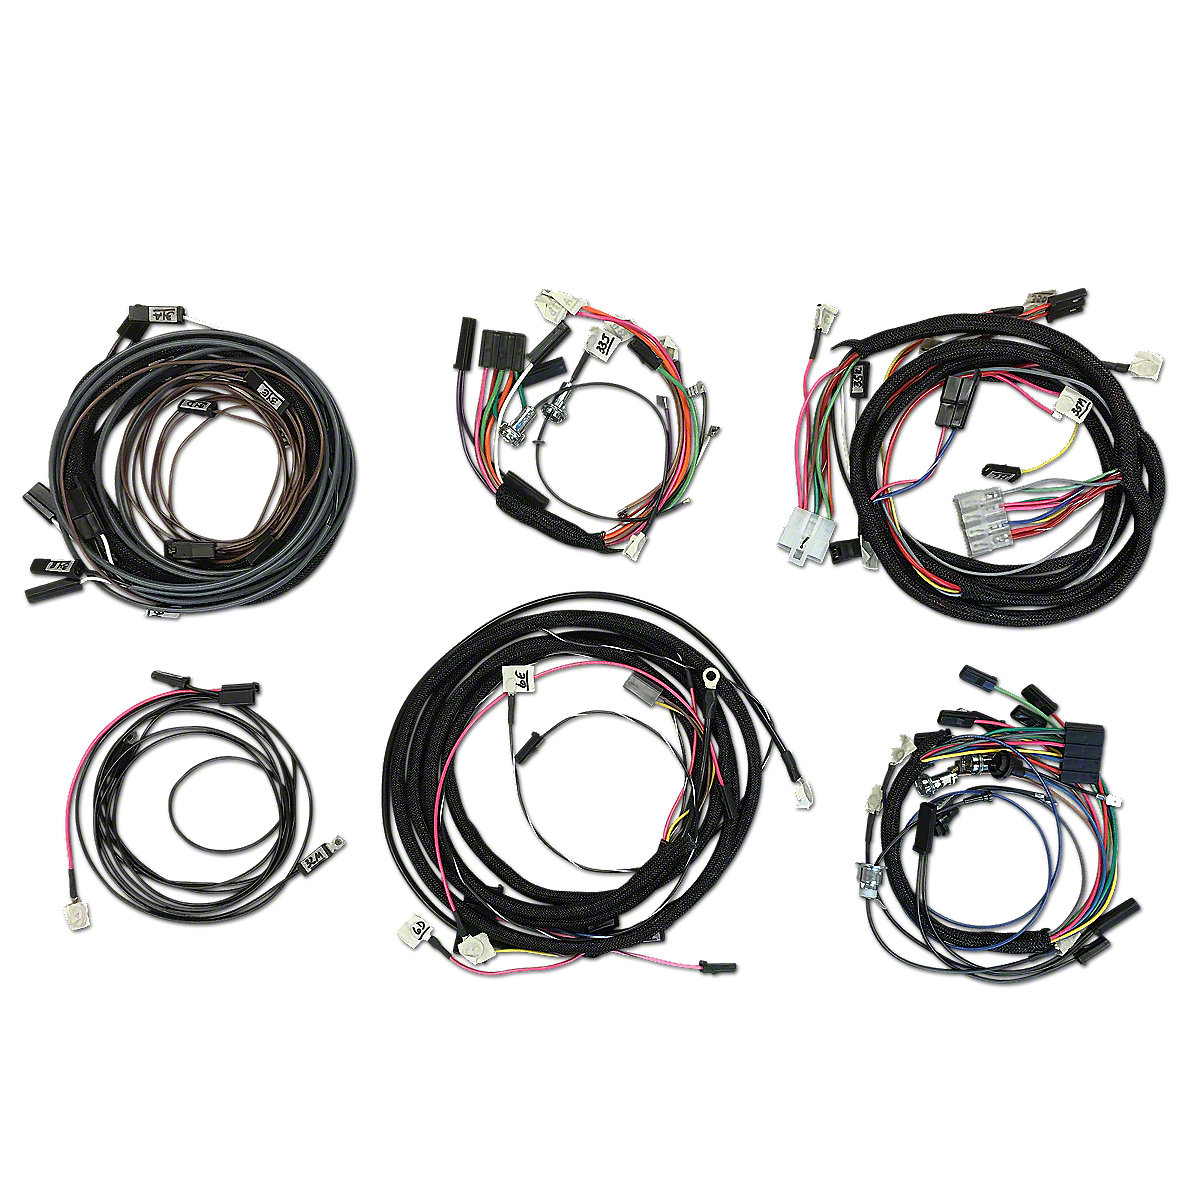 restoration quality wiring harness ihs3552